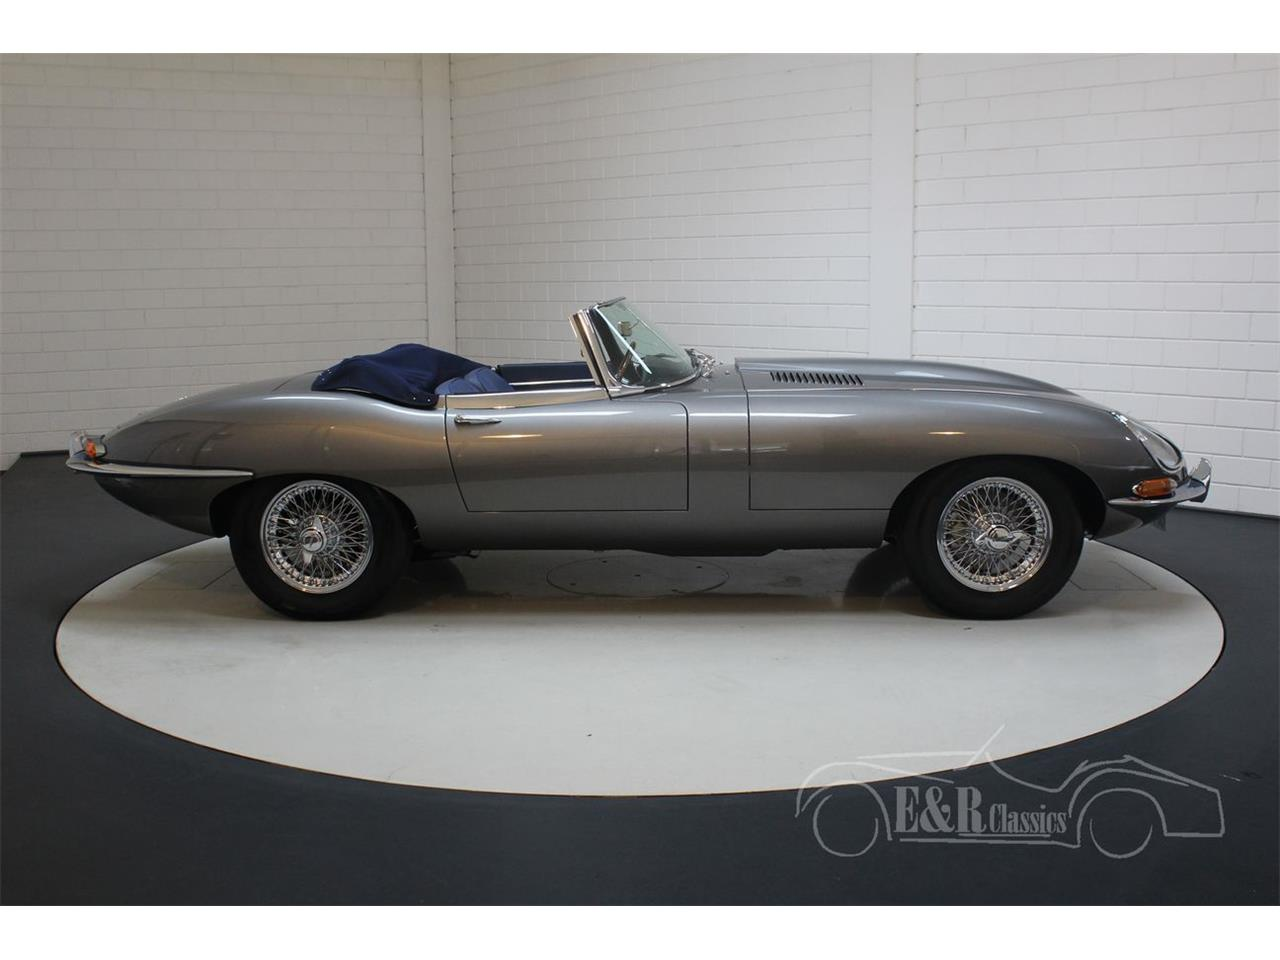 Large Picture of 1967 E-Type located in Noord-Brabant - $222,650.00 - QQ1I